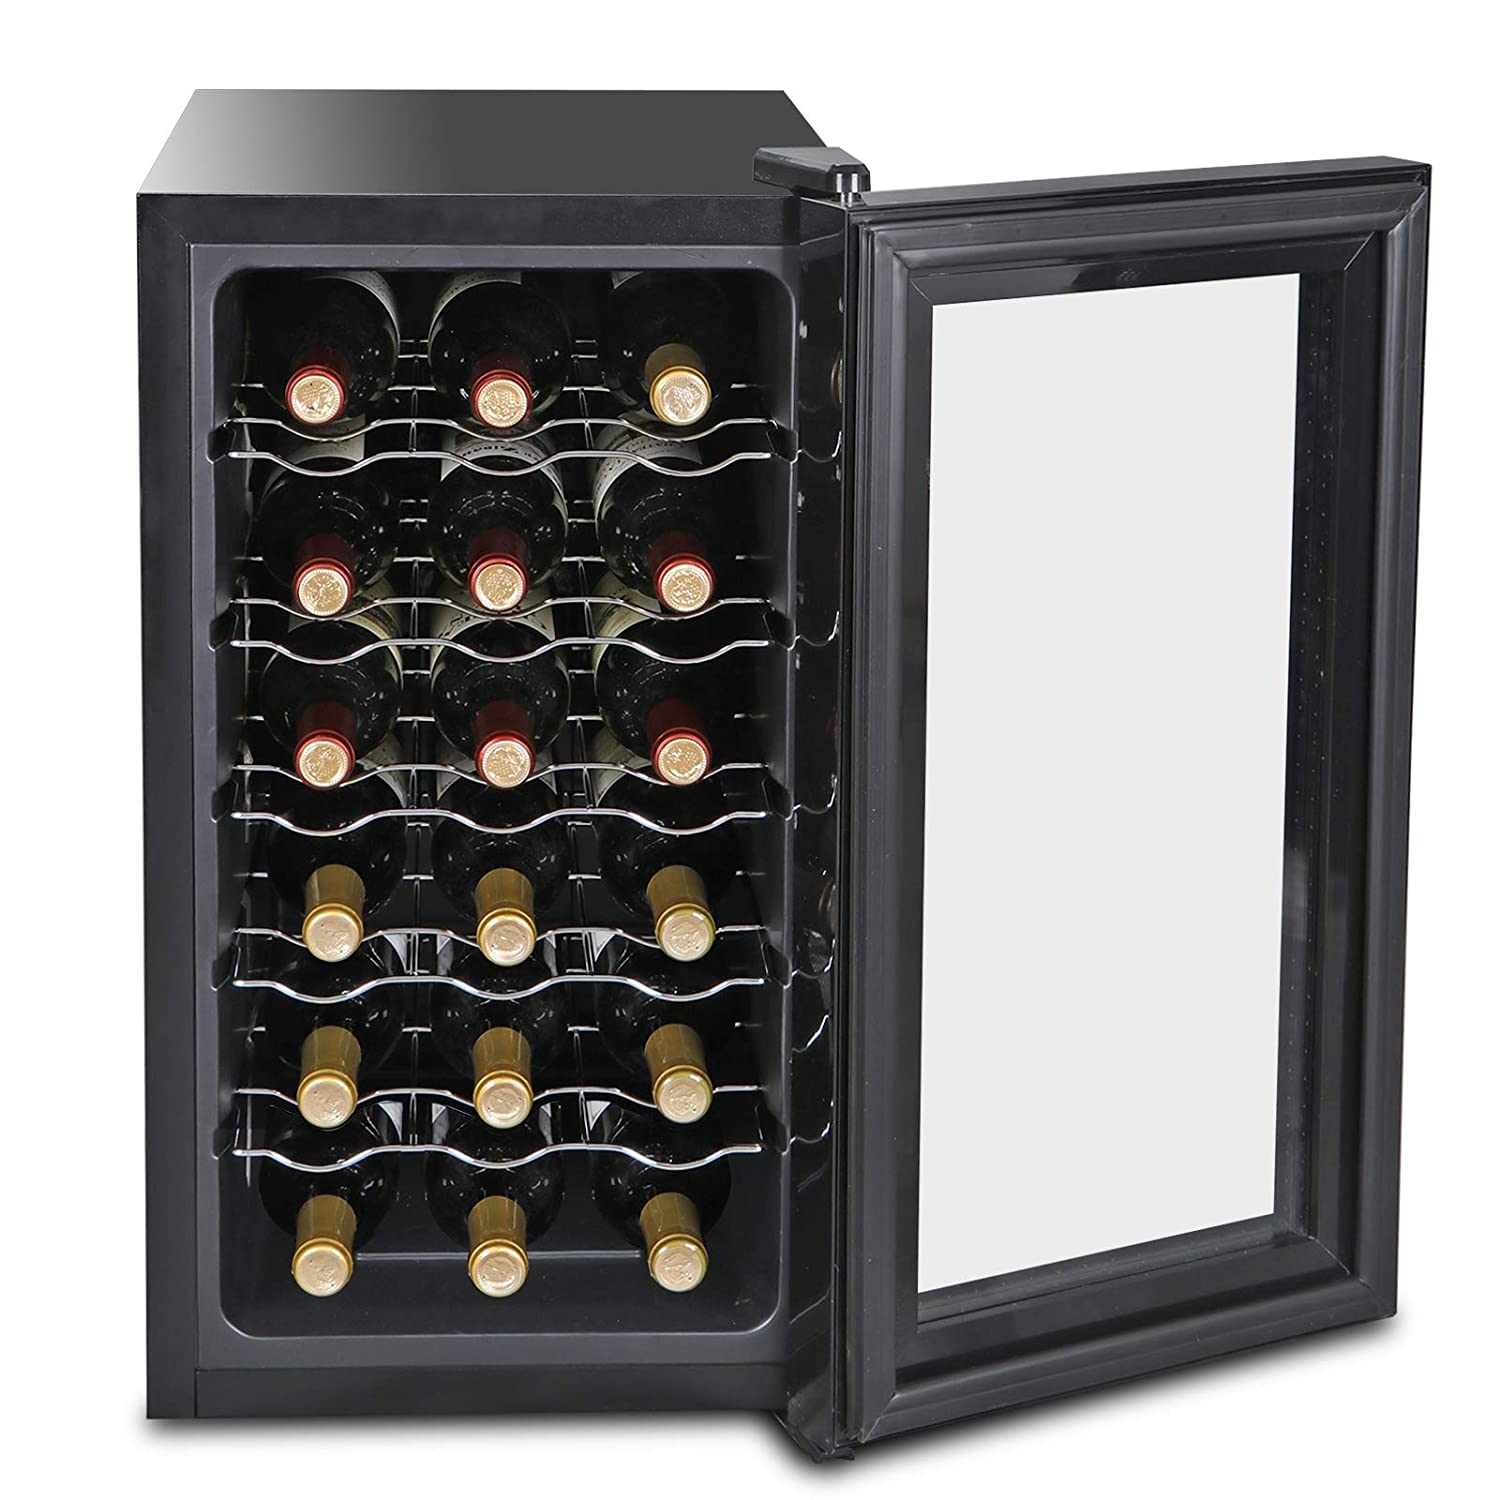 SUPER DEAL 18-Bottle Touchscreen Wine Cooler Thermoelectric Freestanding Red White Wine Champagne Chiller Wine Refrigerator (18-Bottle)